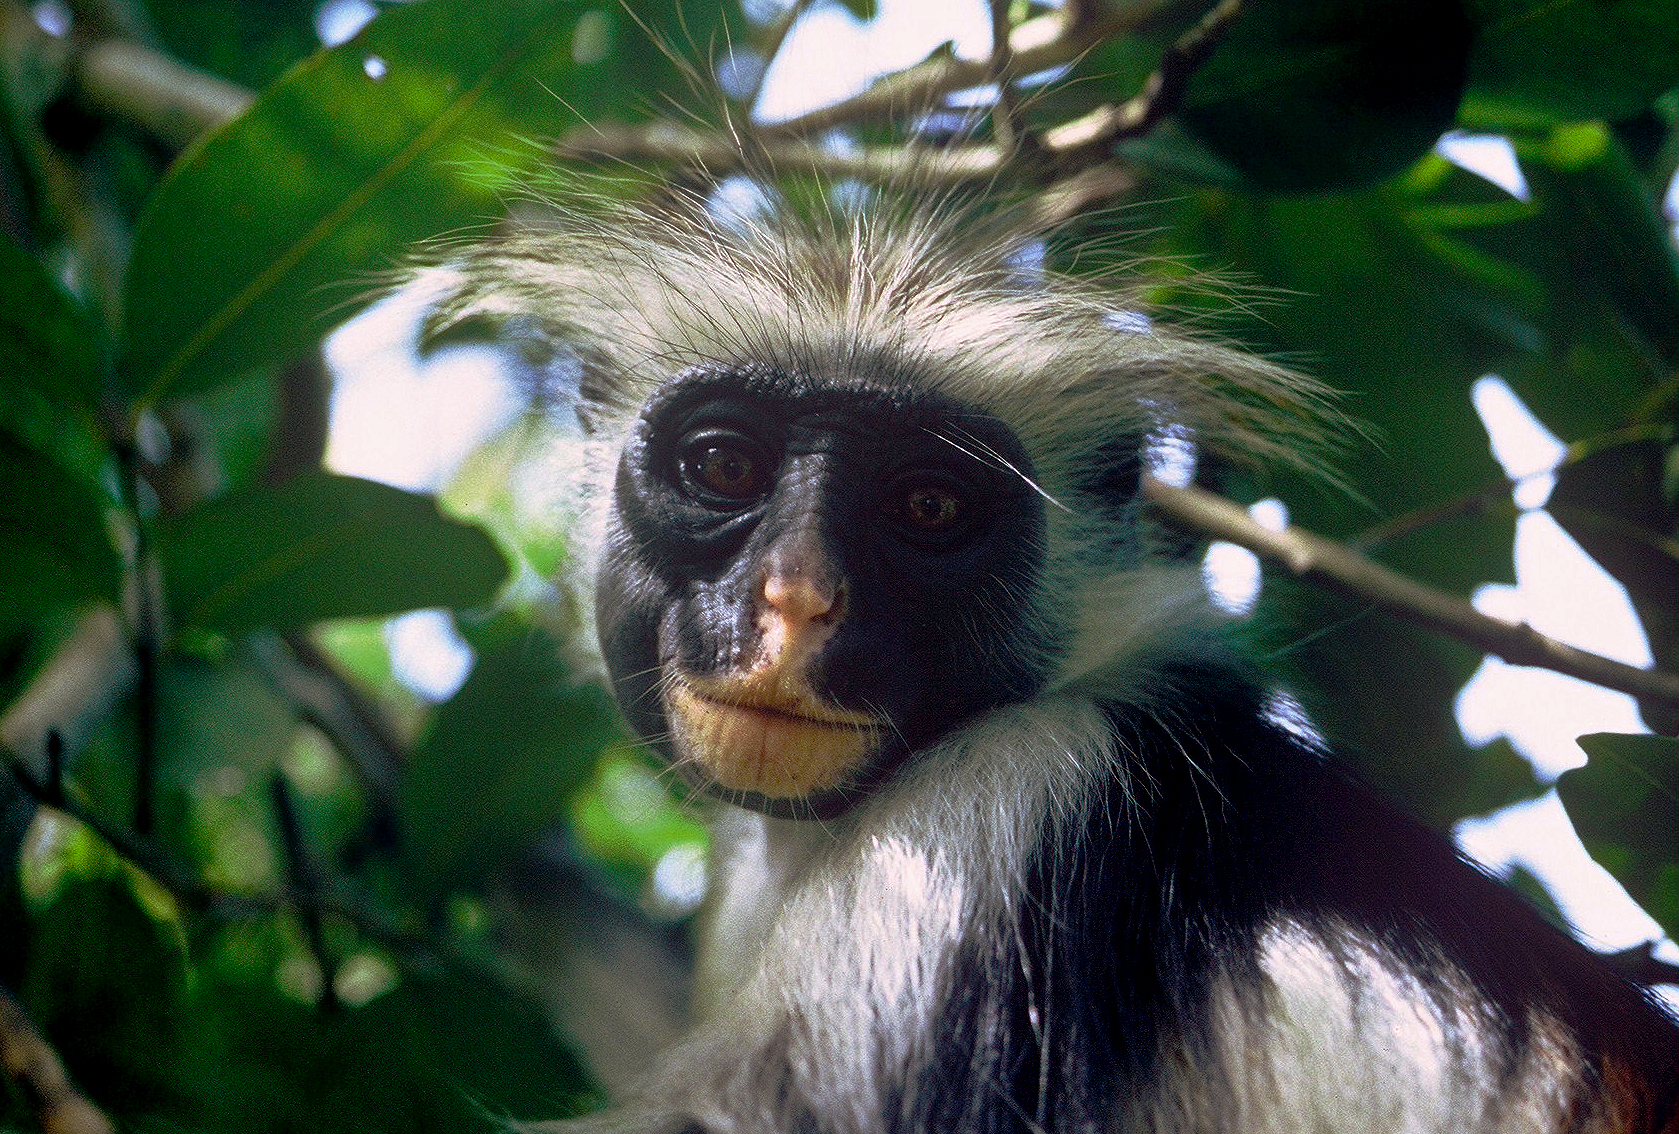 PORTRAIT OF A RED COLOBUS MONKEY (Procolobus kirkii)